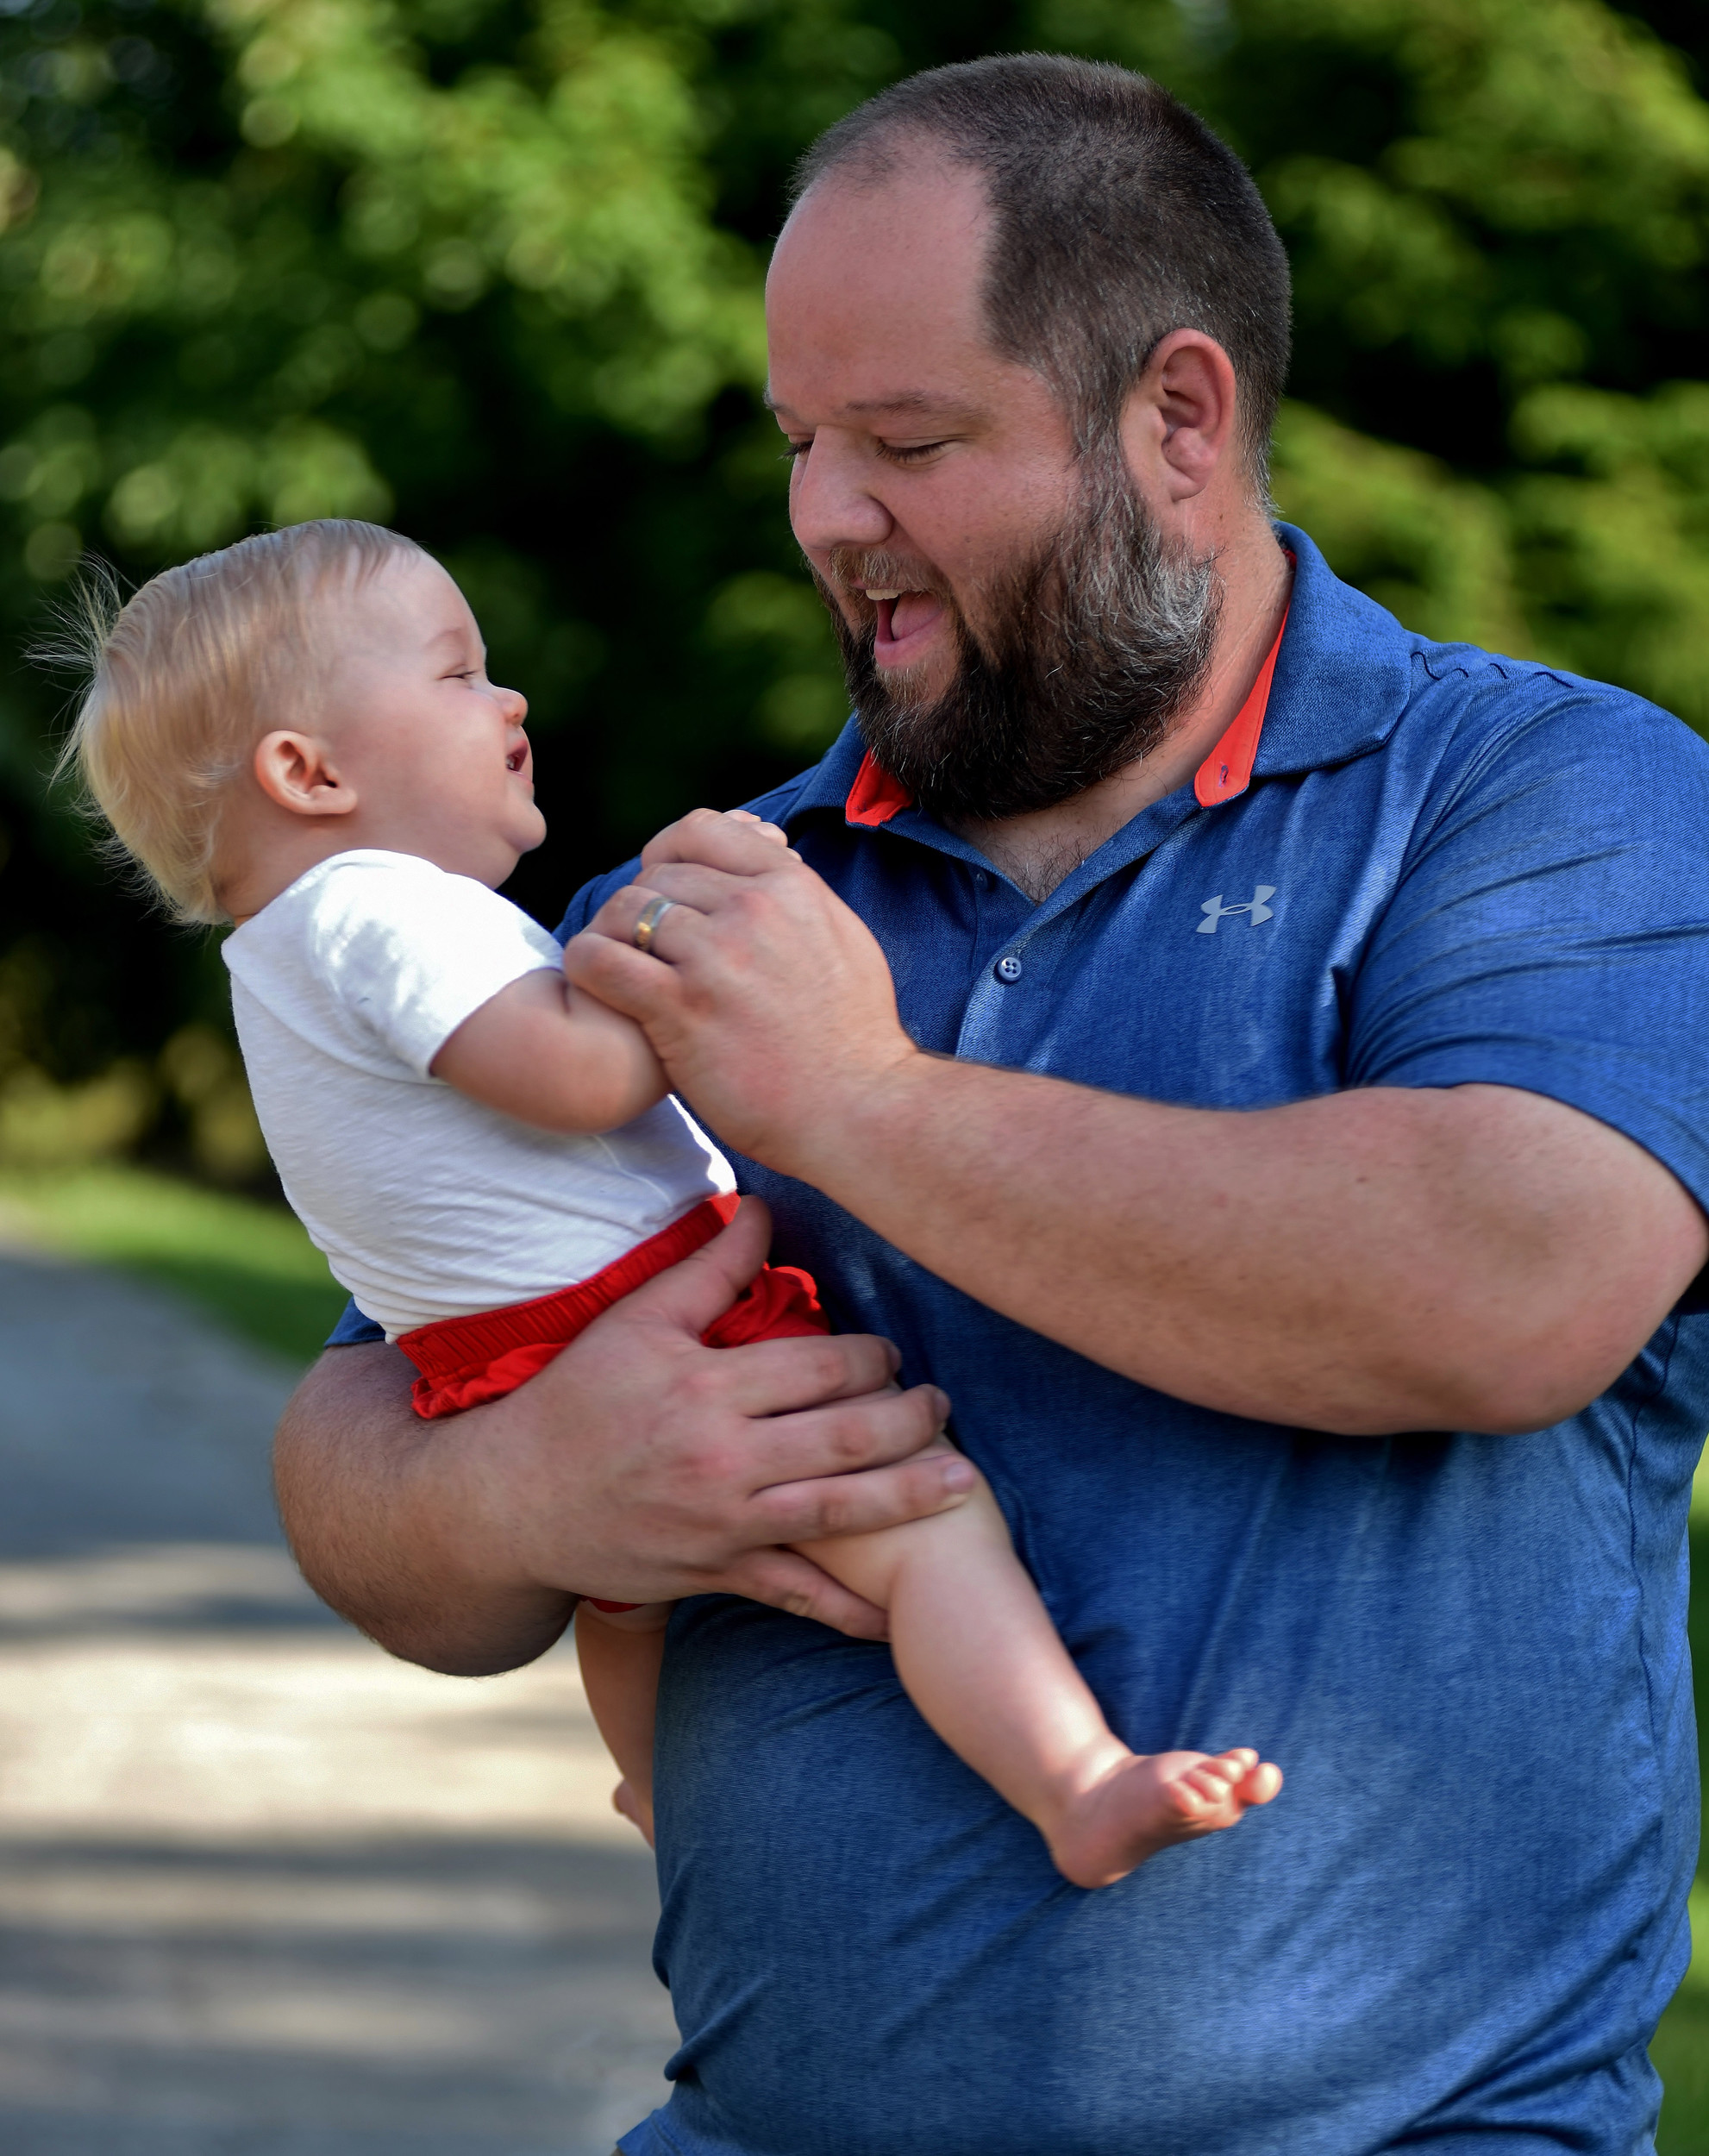 Tom Shinall shares a laugh with his son Walter, who will celebrate his first birthday Aug. 16.